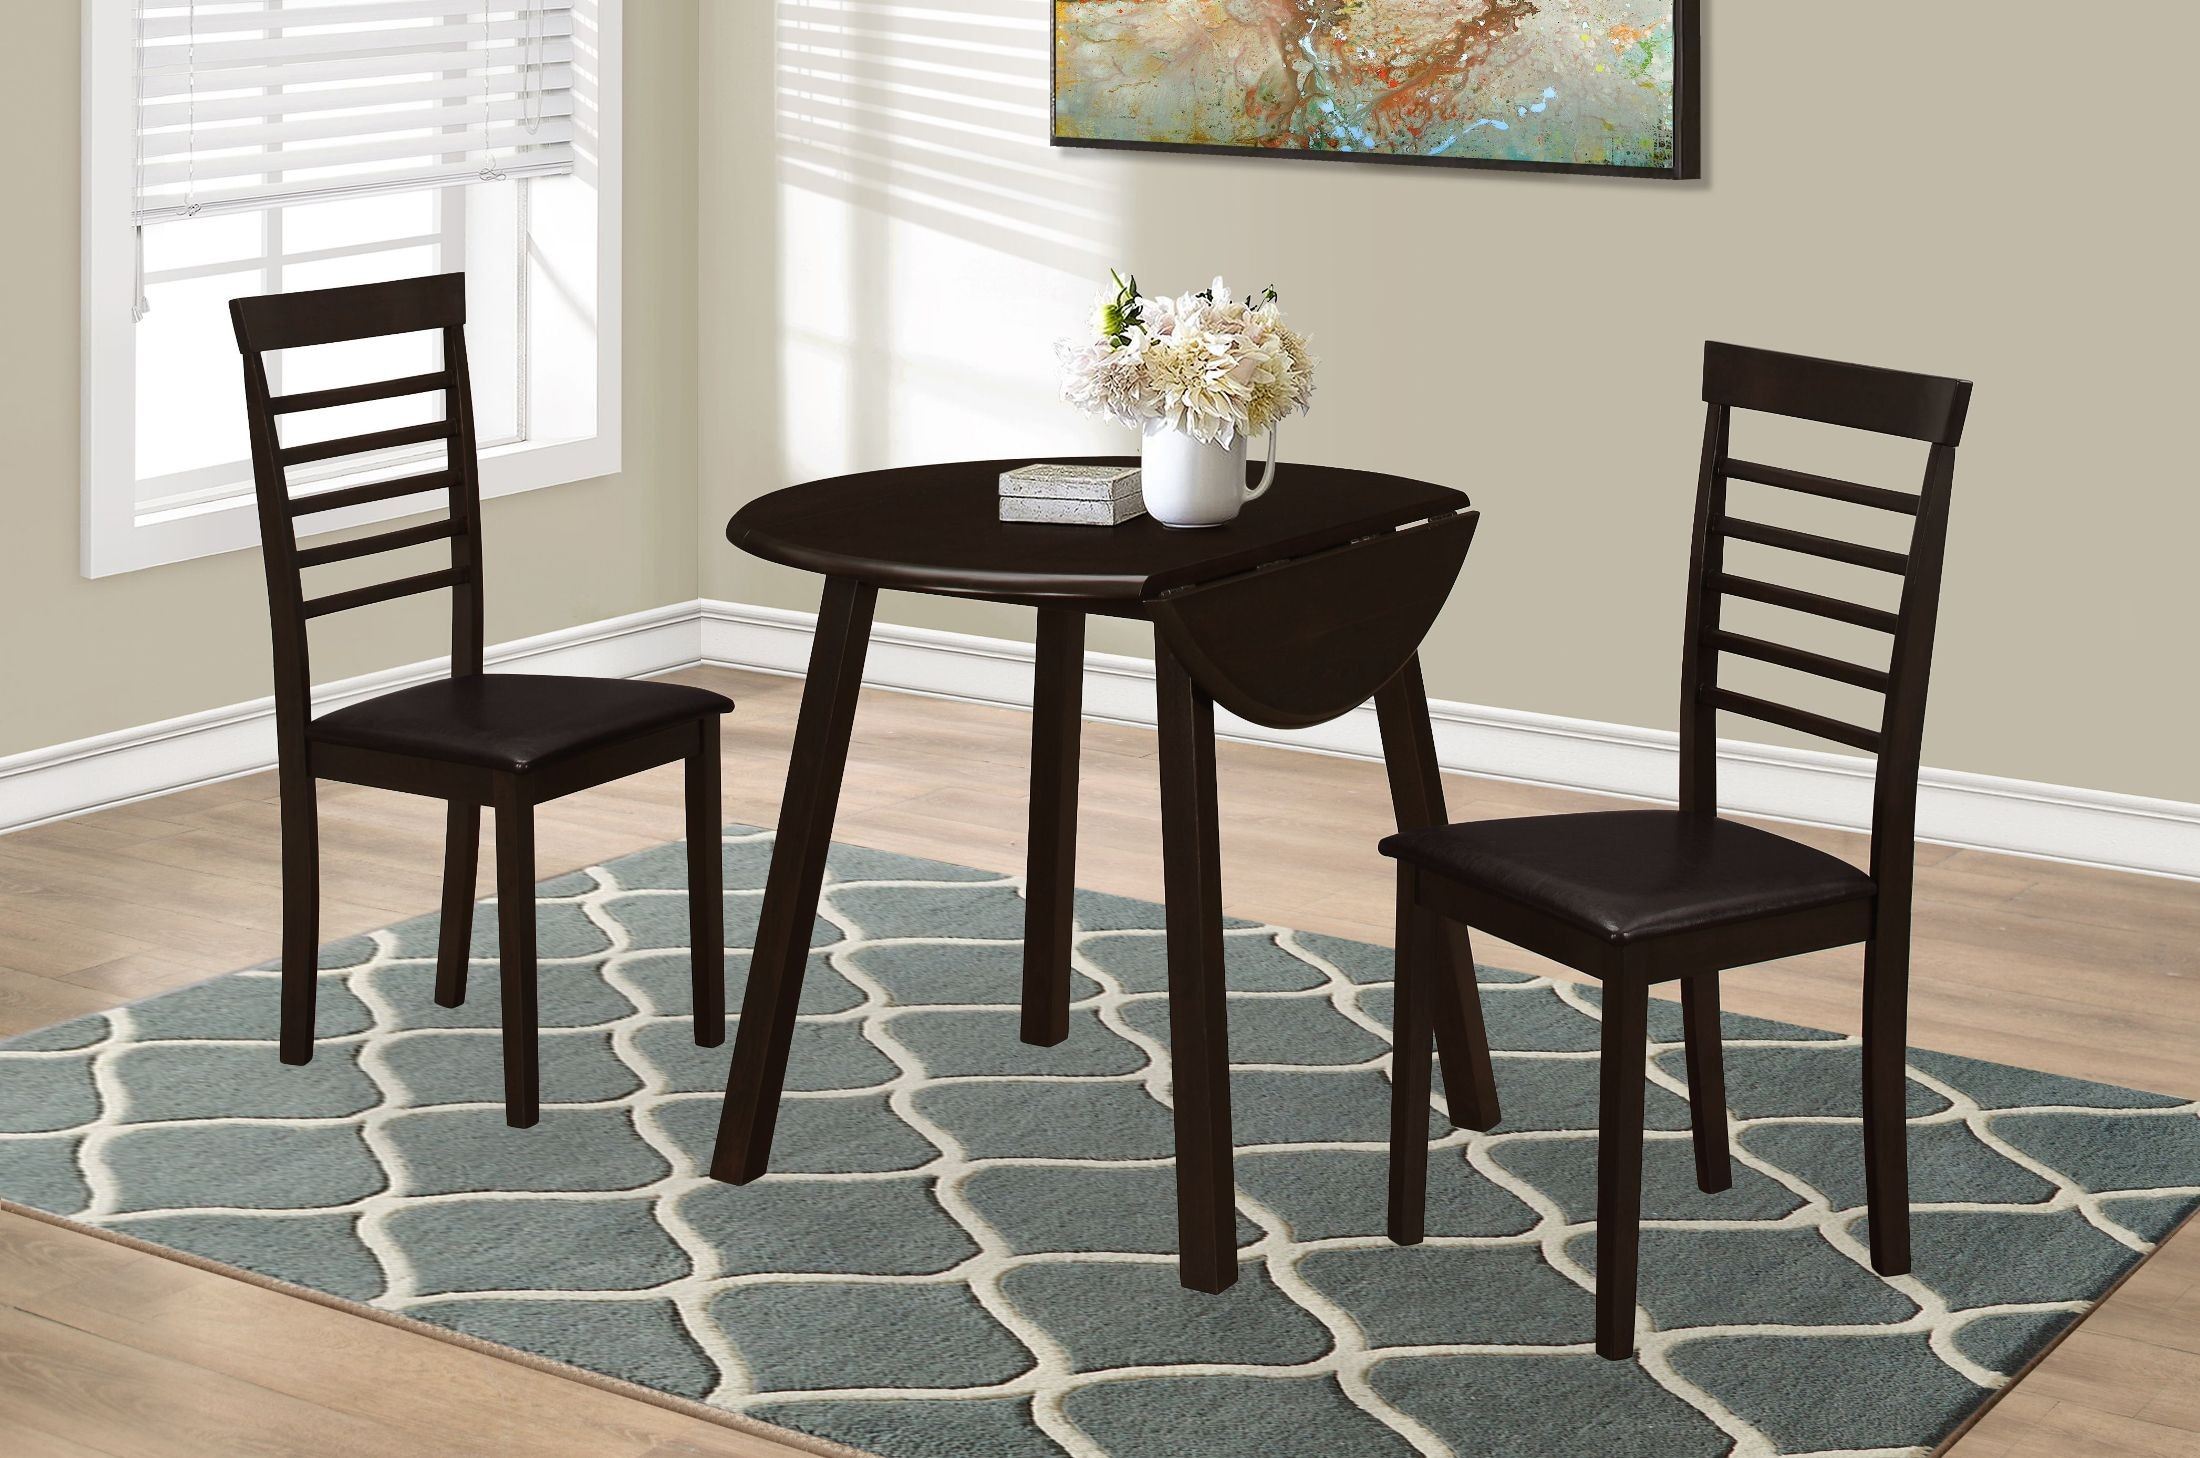 36 quot cappuccino 3 piece dining room set 1004 monarch